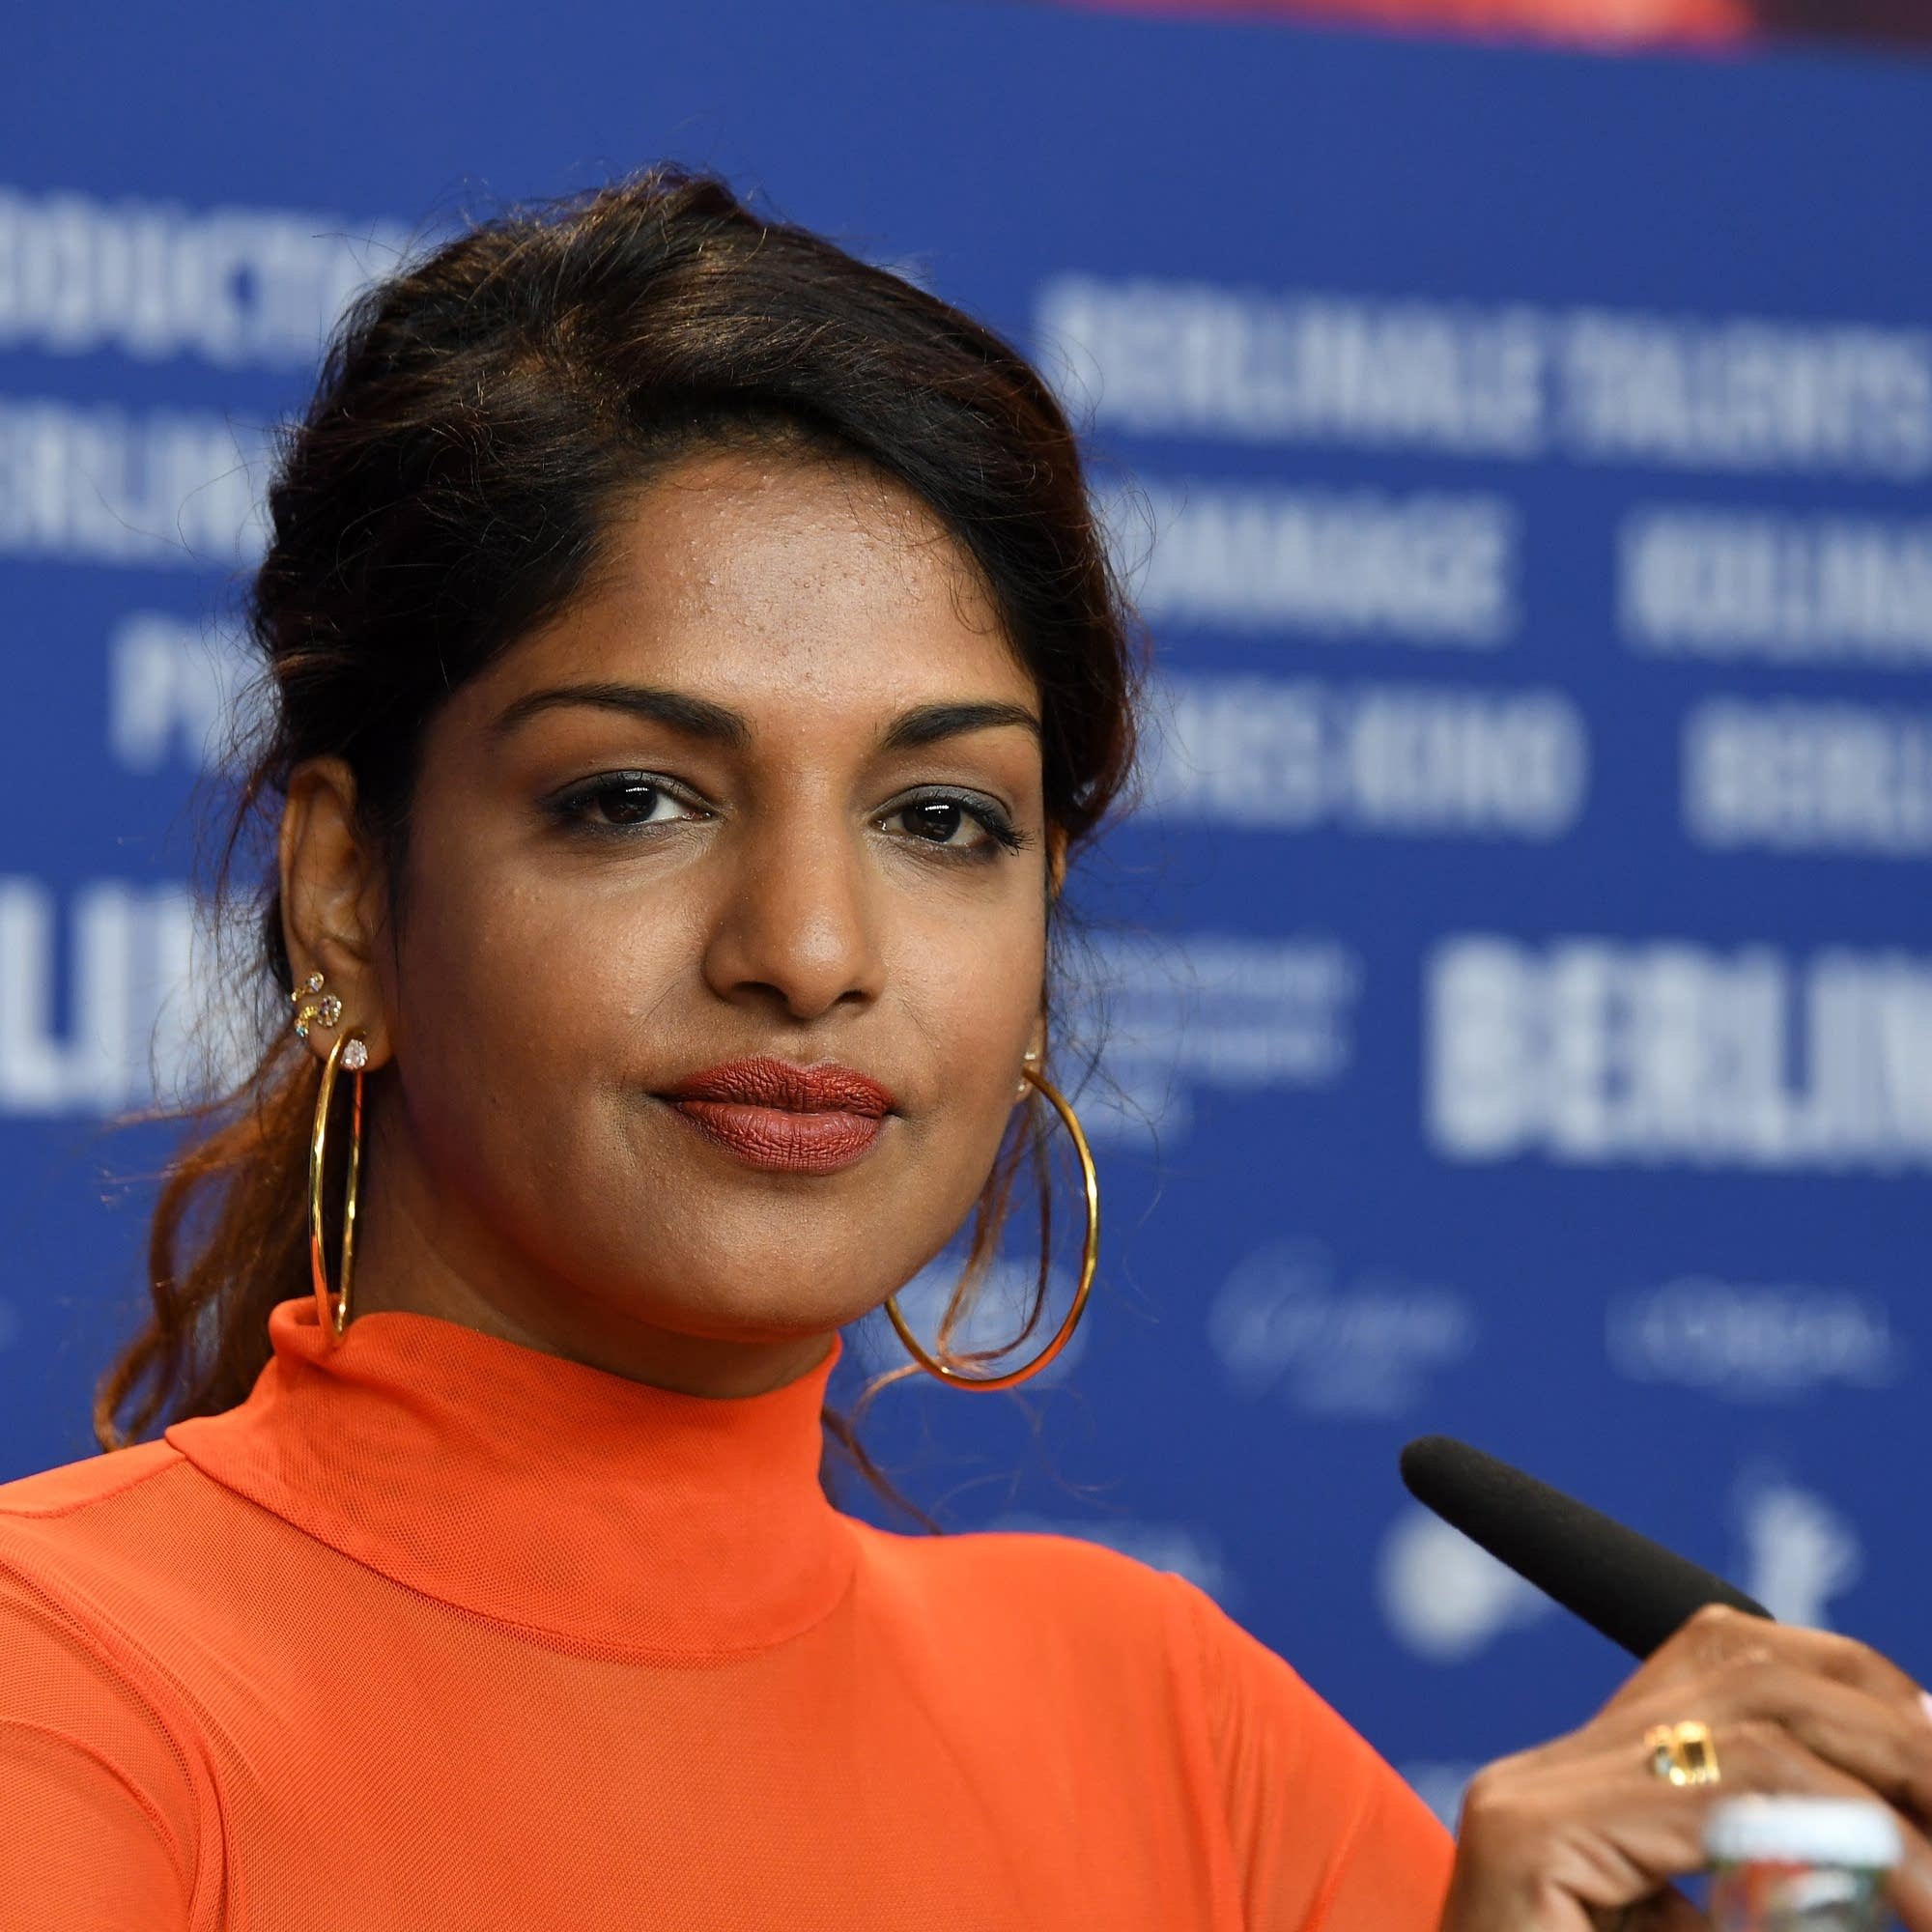 M.I.A. at a press conference in Berlin, 2018.